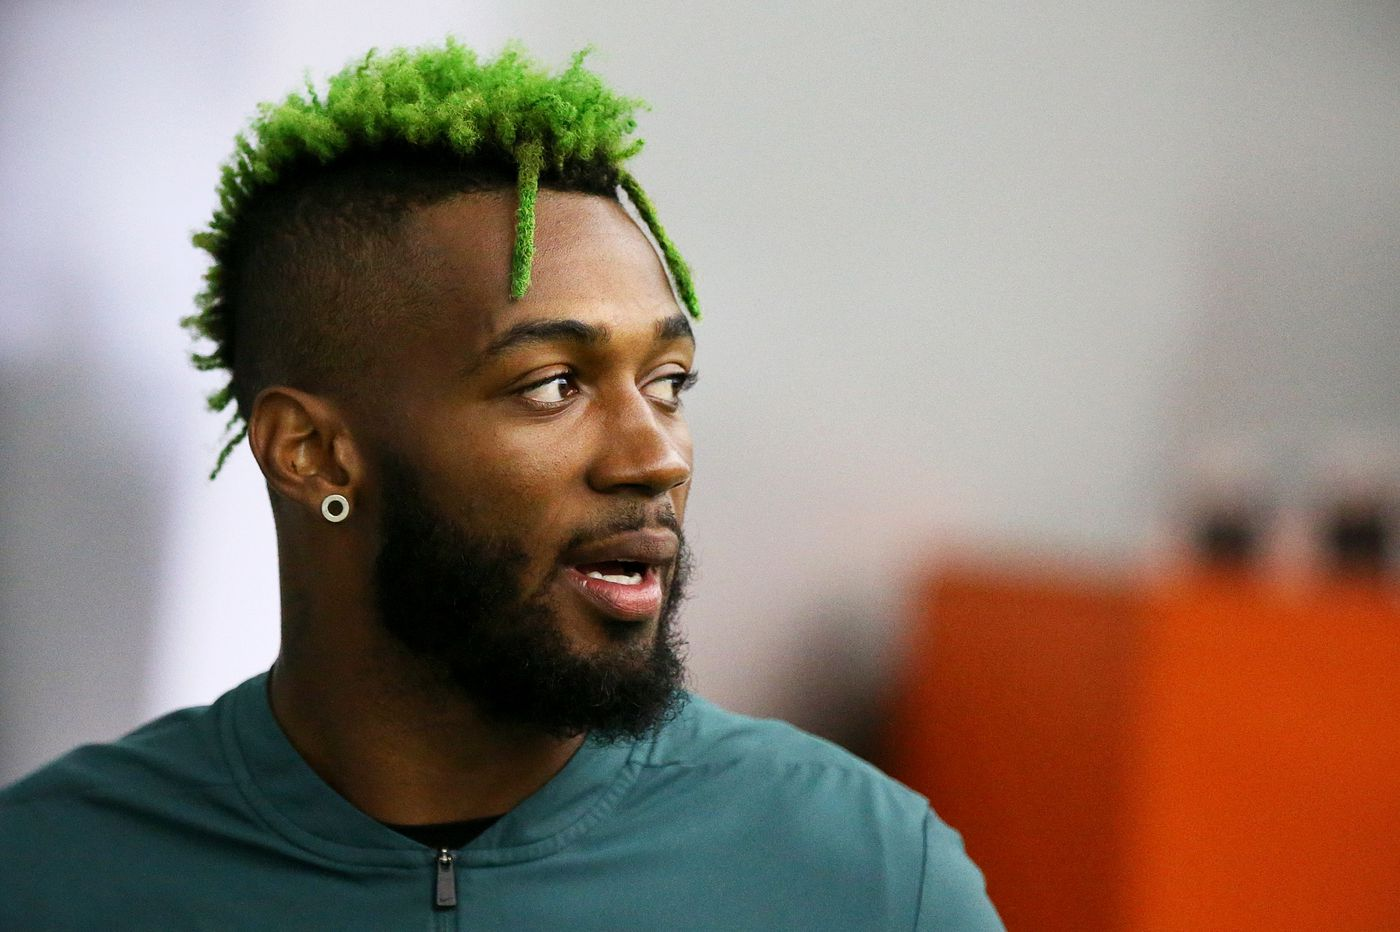 Eagles cornerback Jalen Mills opens up about his foot injury, recovery and return